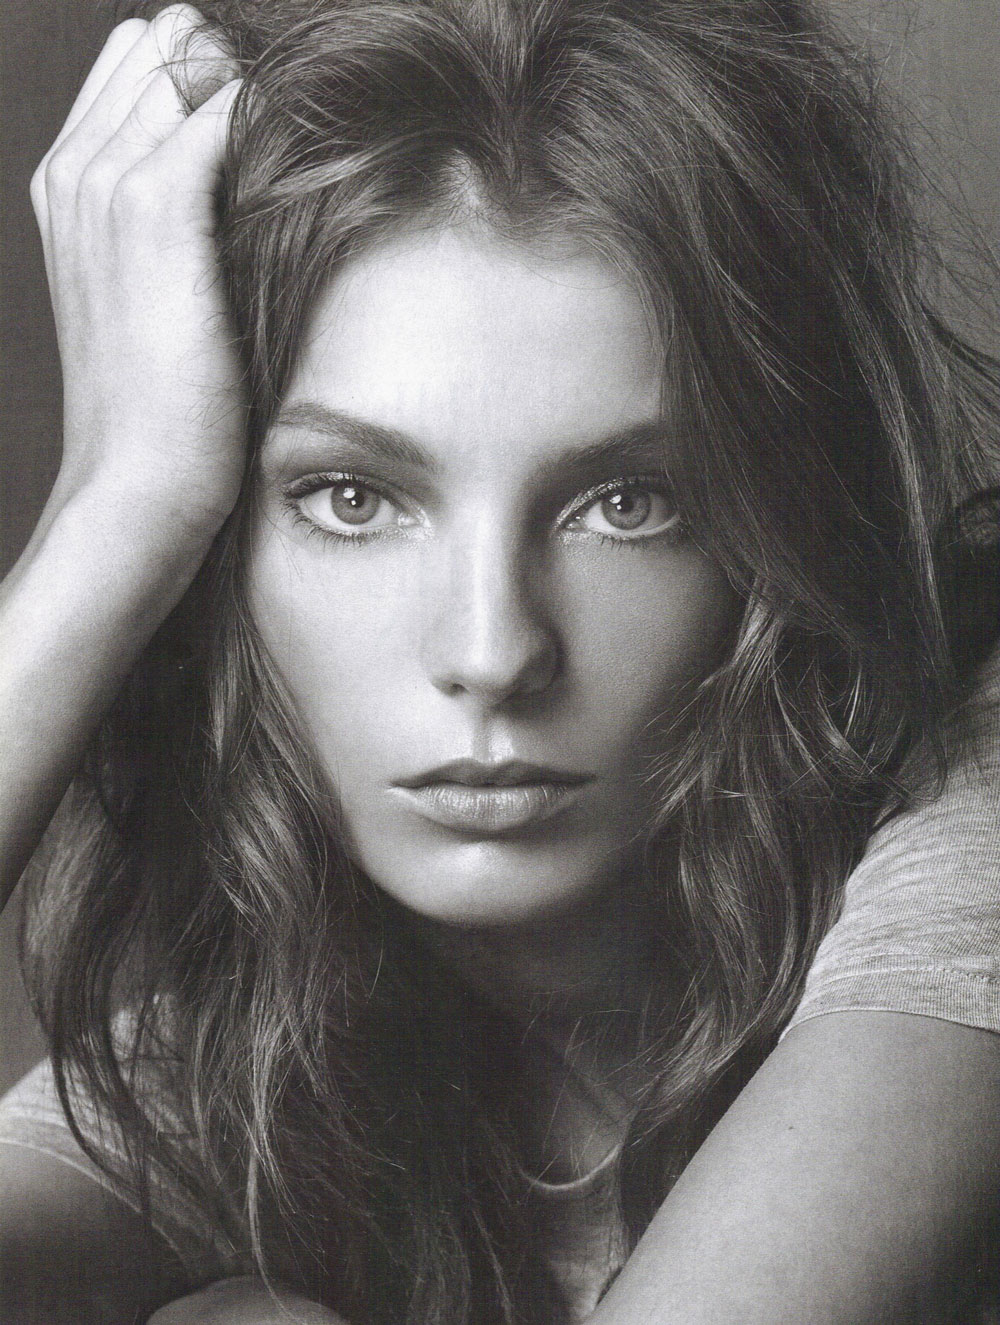 Daria Werbowy in Vogue Italia May 2004